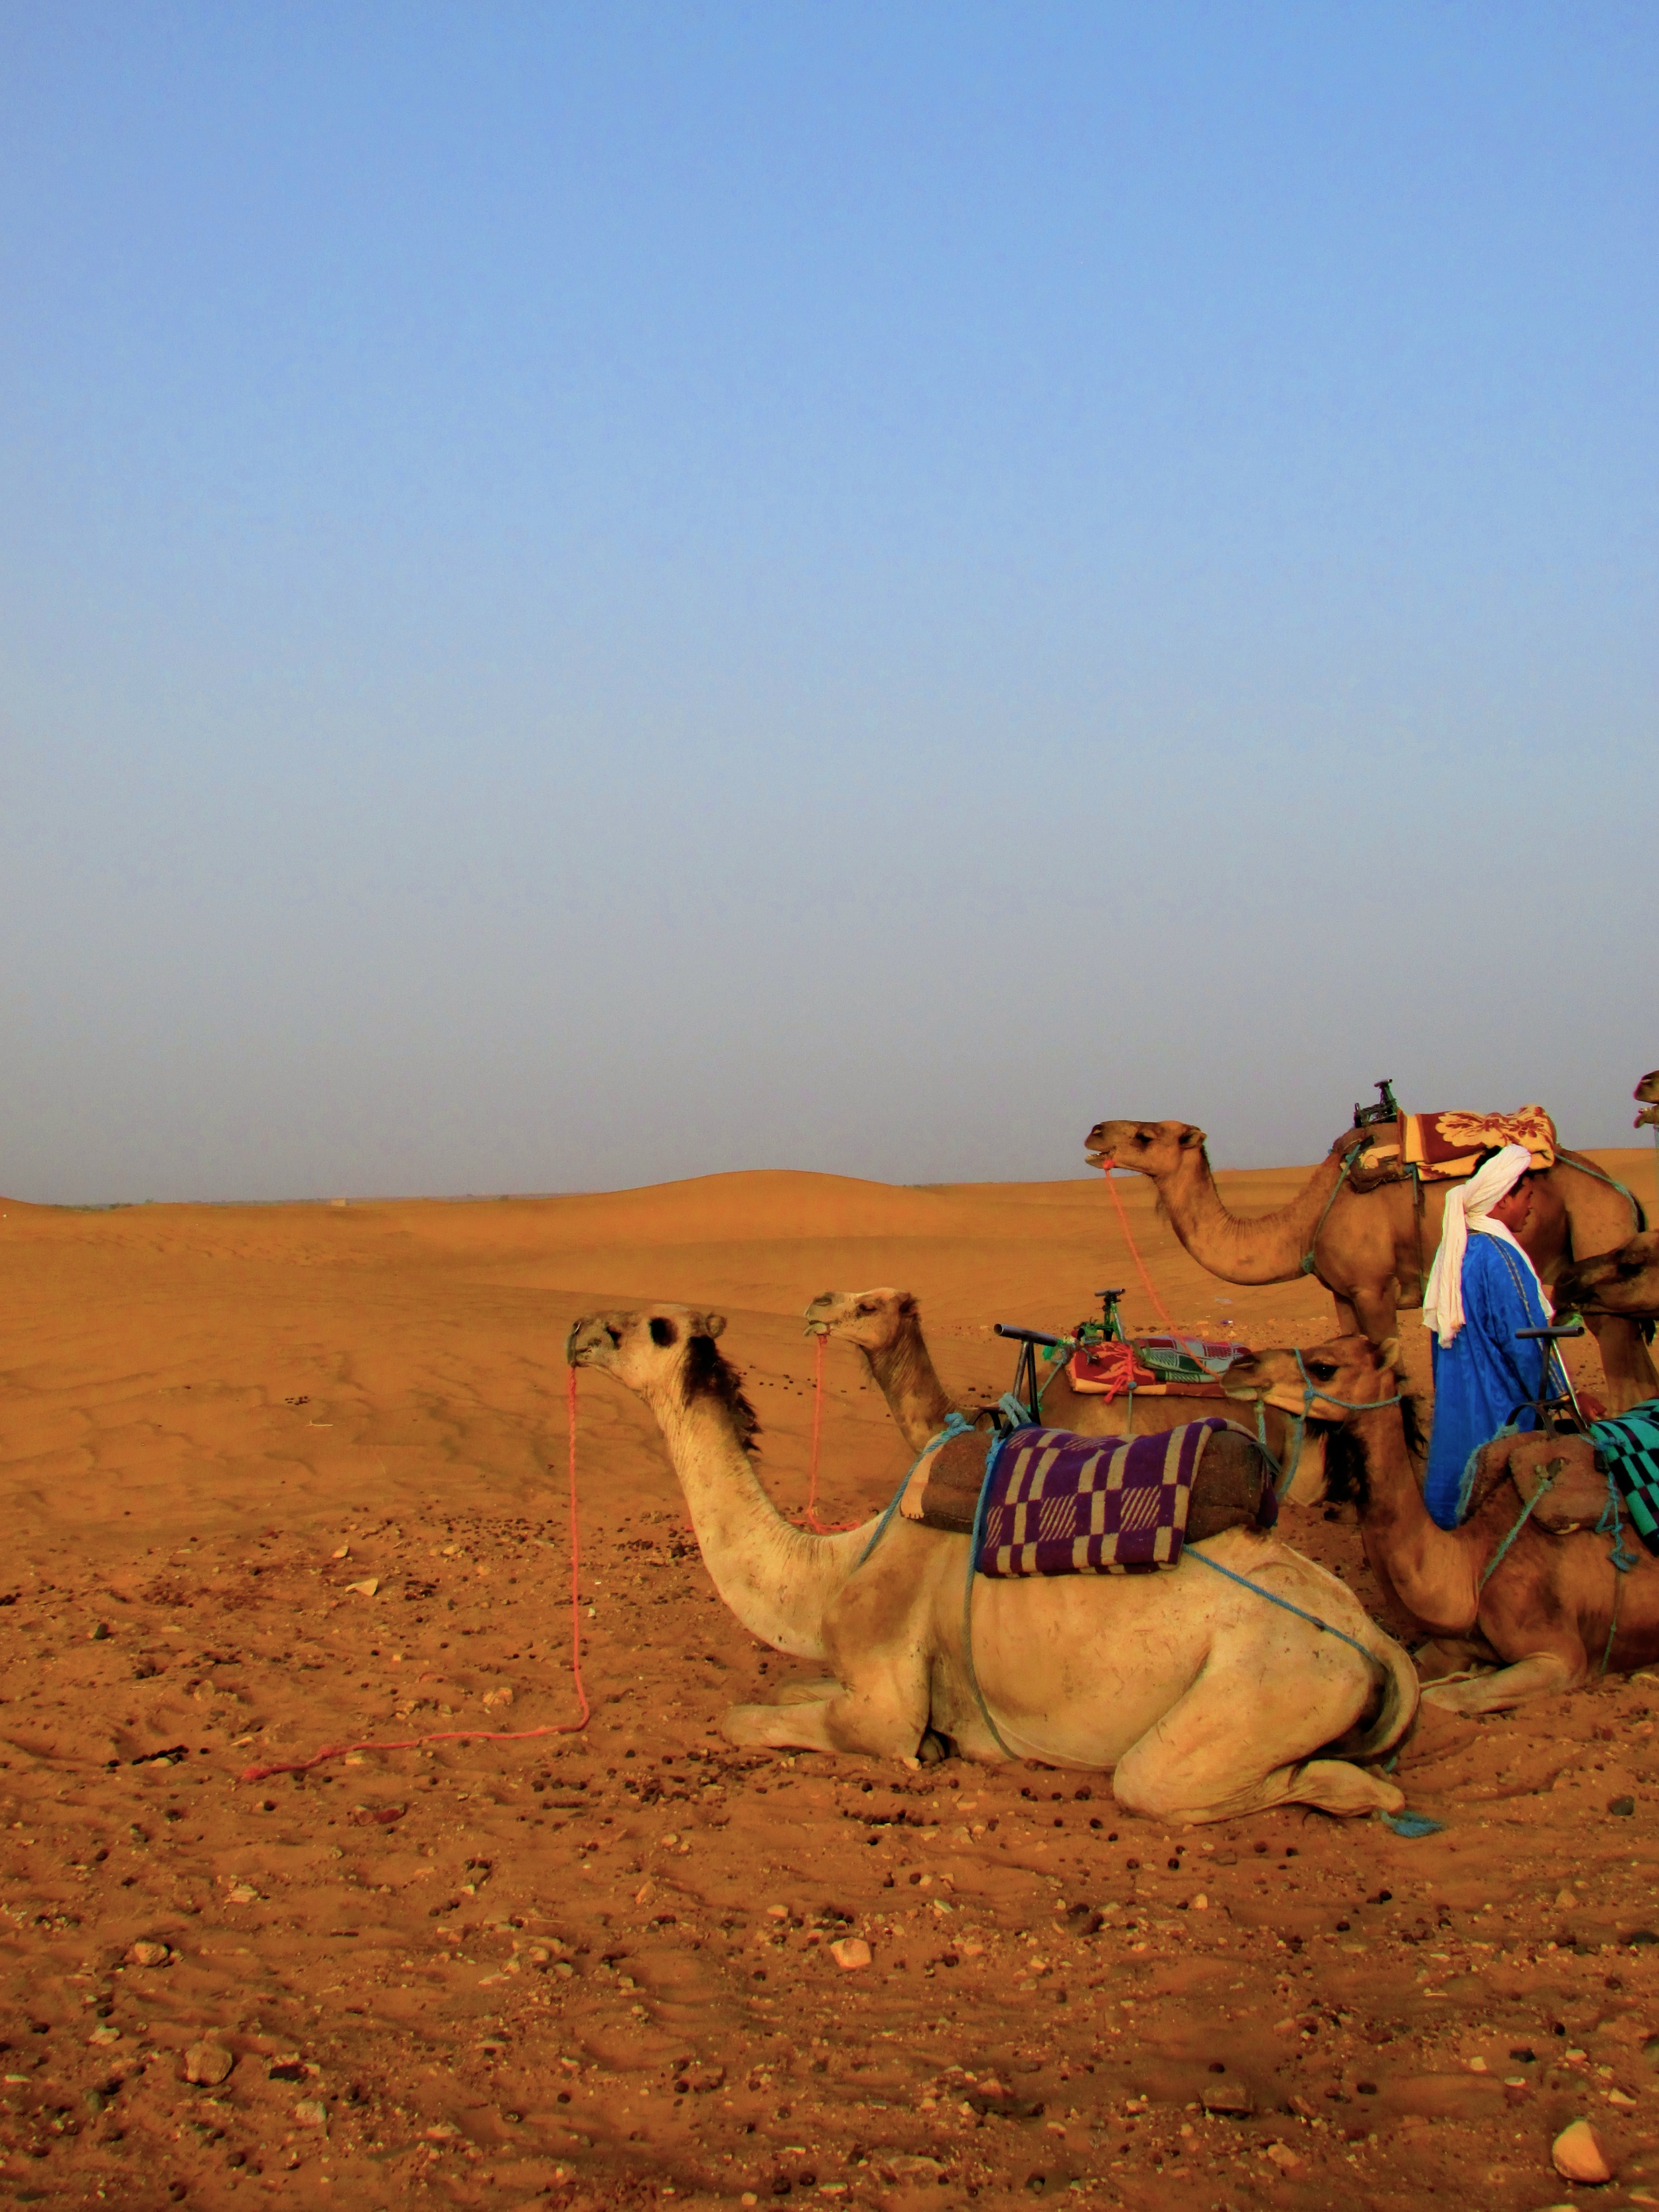 My guide getting the camels ready for the long journey out of the desert in Morocco